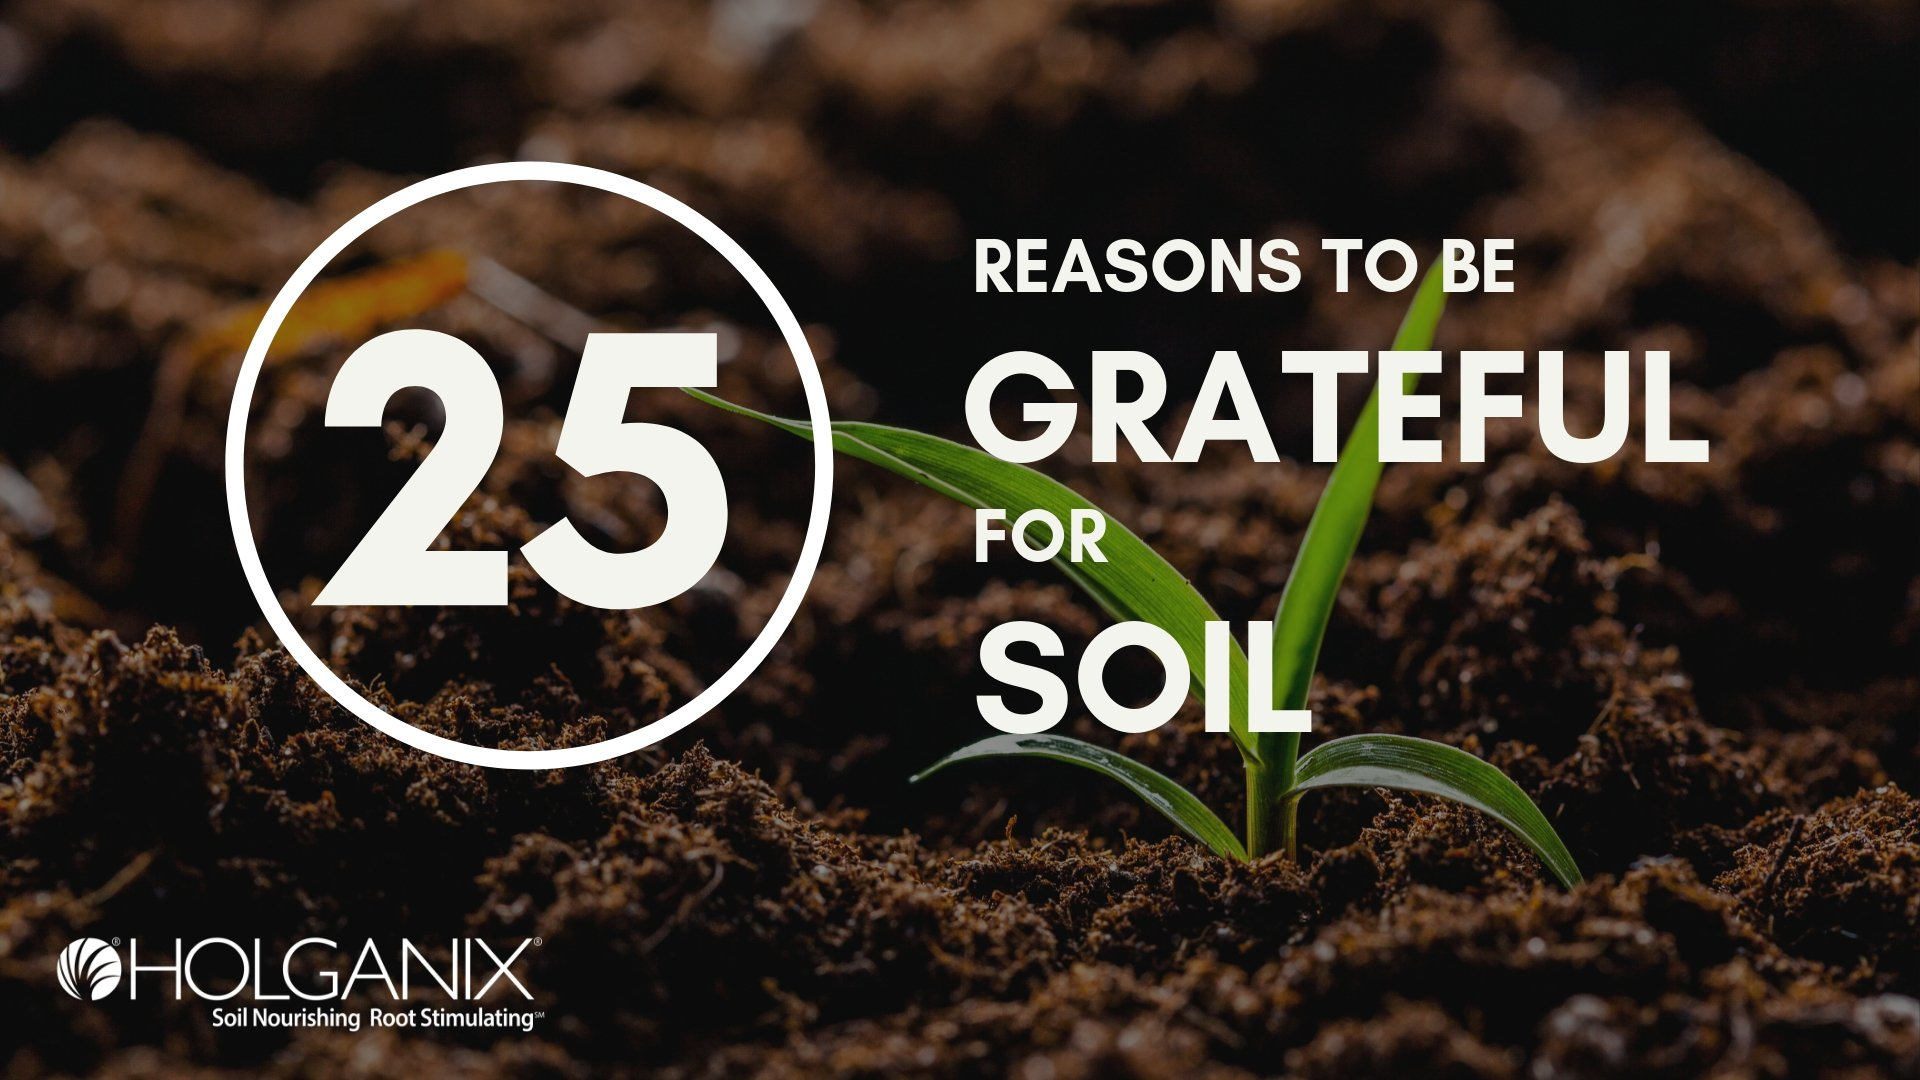 25 Reasons To Be Grateful For Soil: Why Soil Is Important [SlideShare]